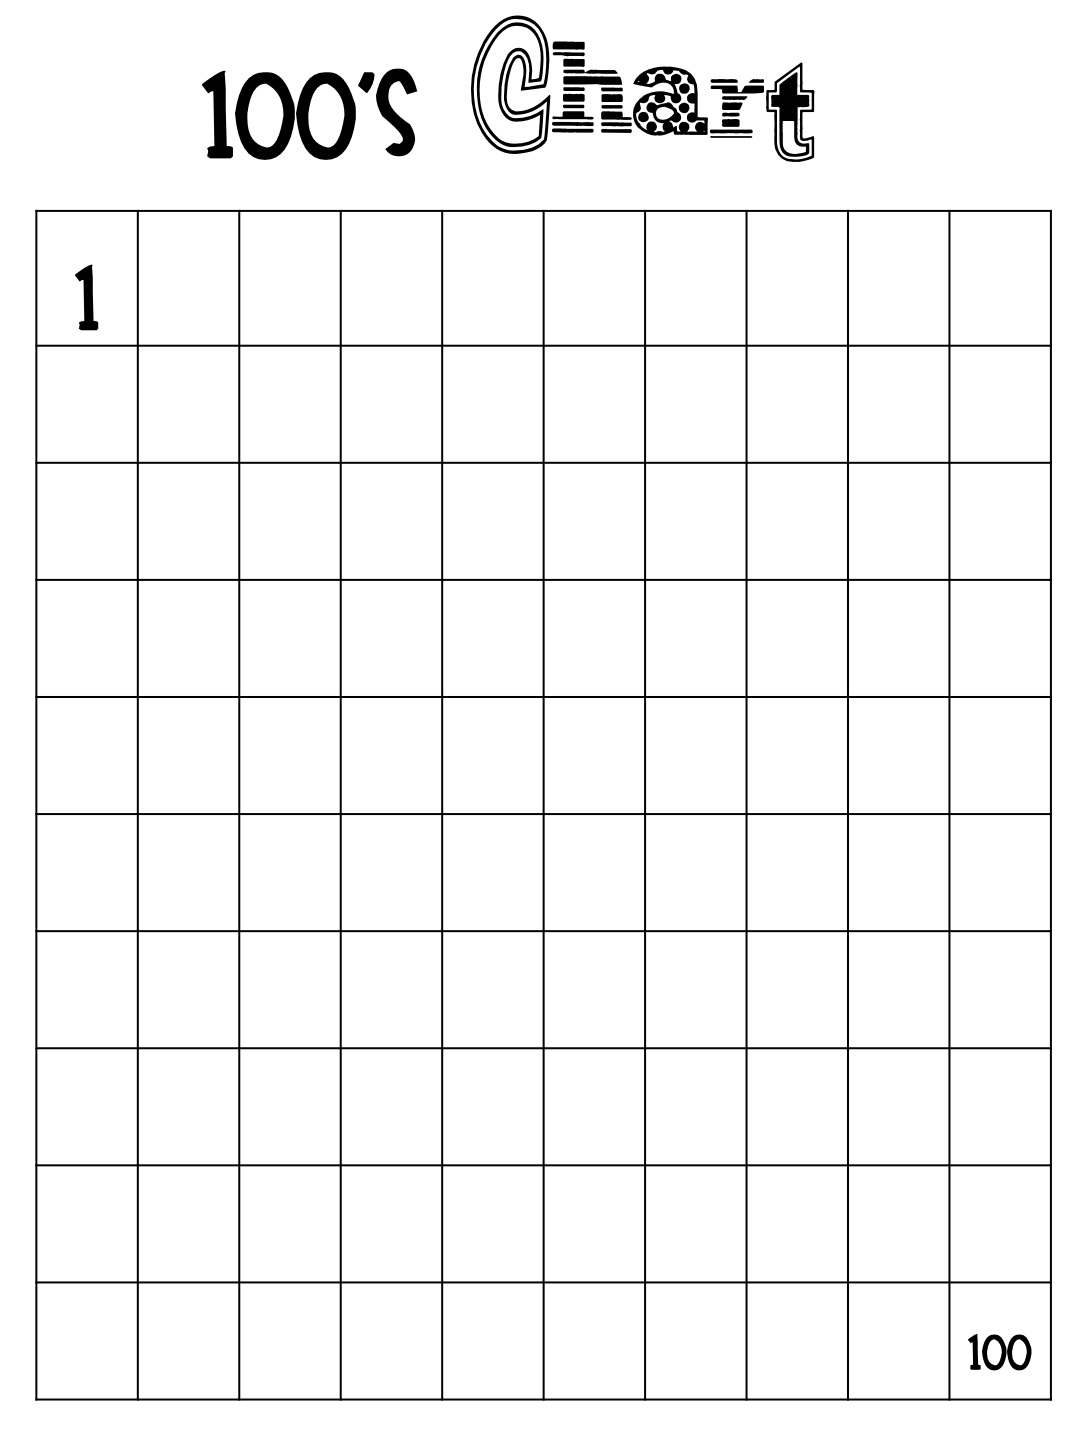 Challenge yourself to fill in a blank hundred chart !